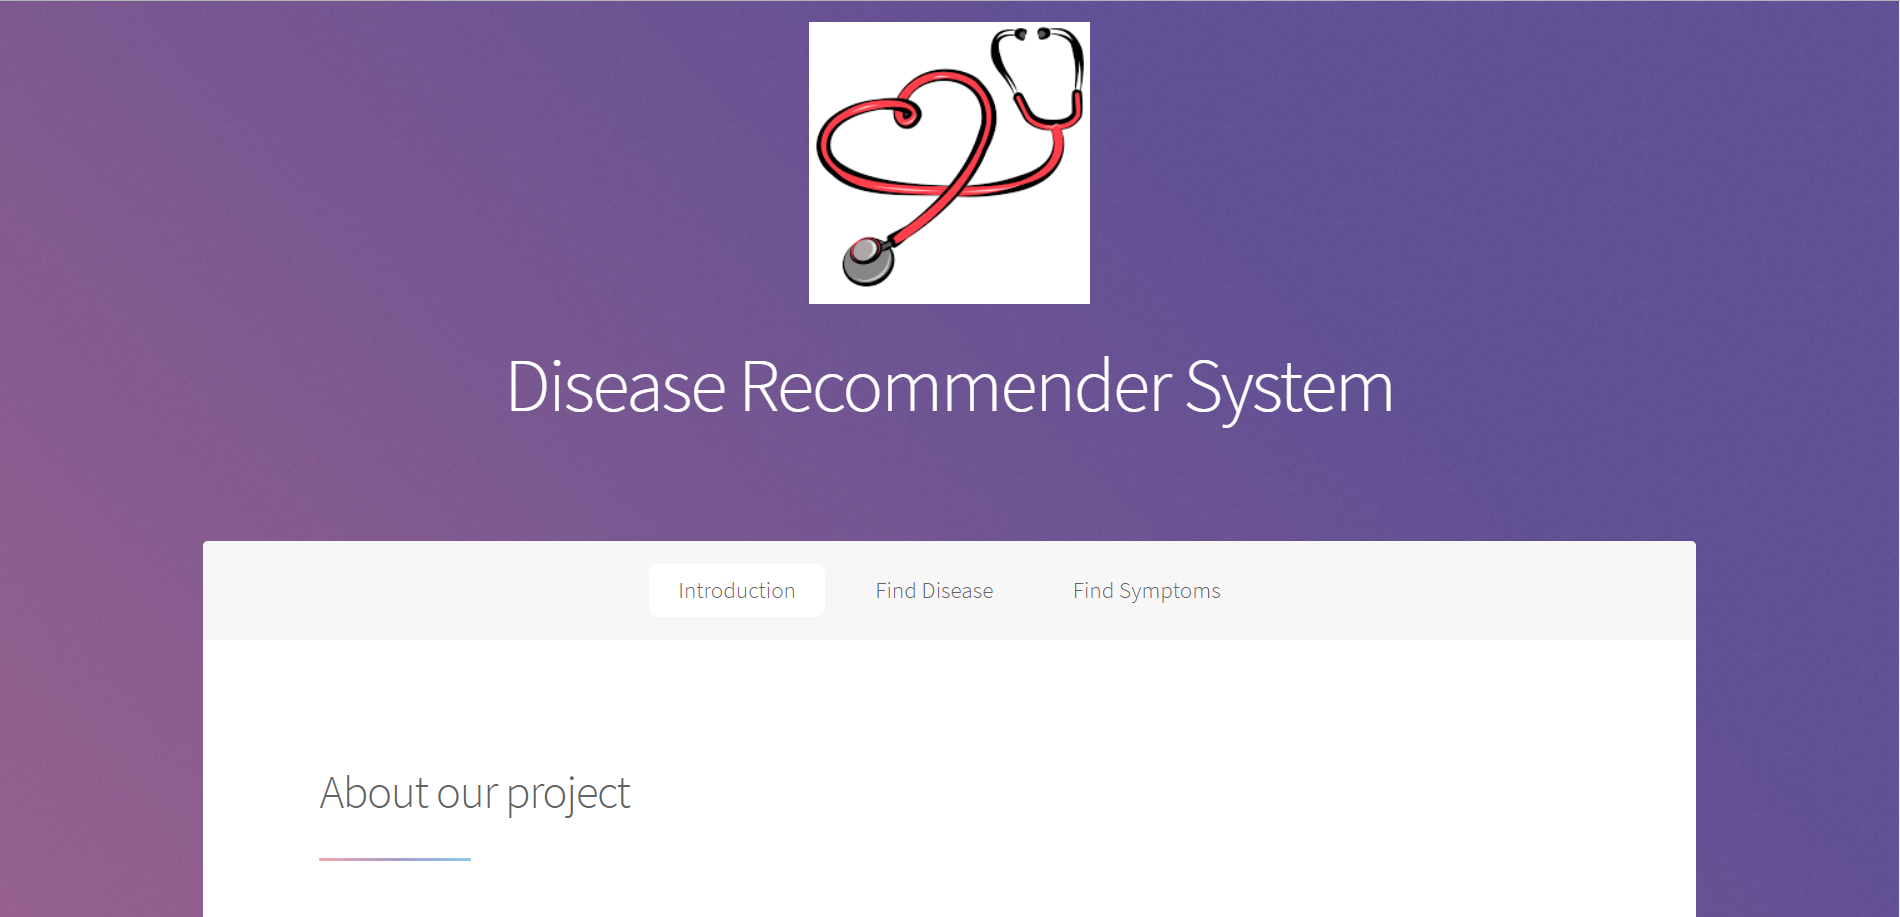 Knowledge-Based Disease Recommender System | AngelList